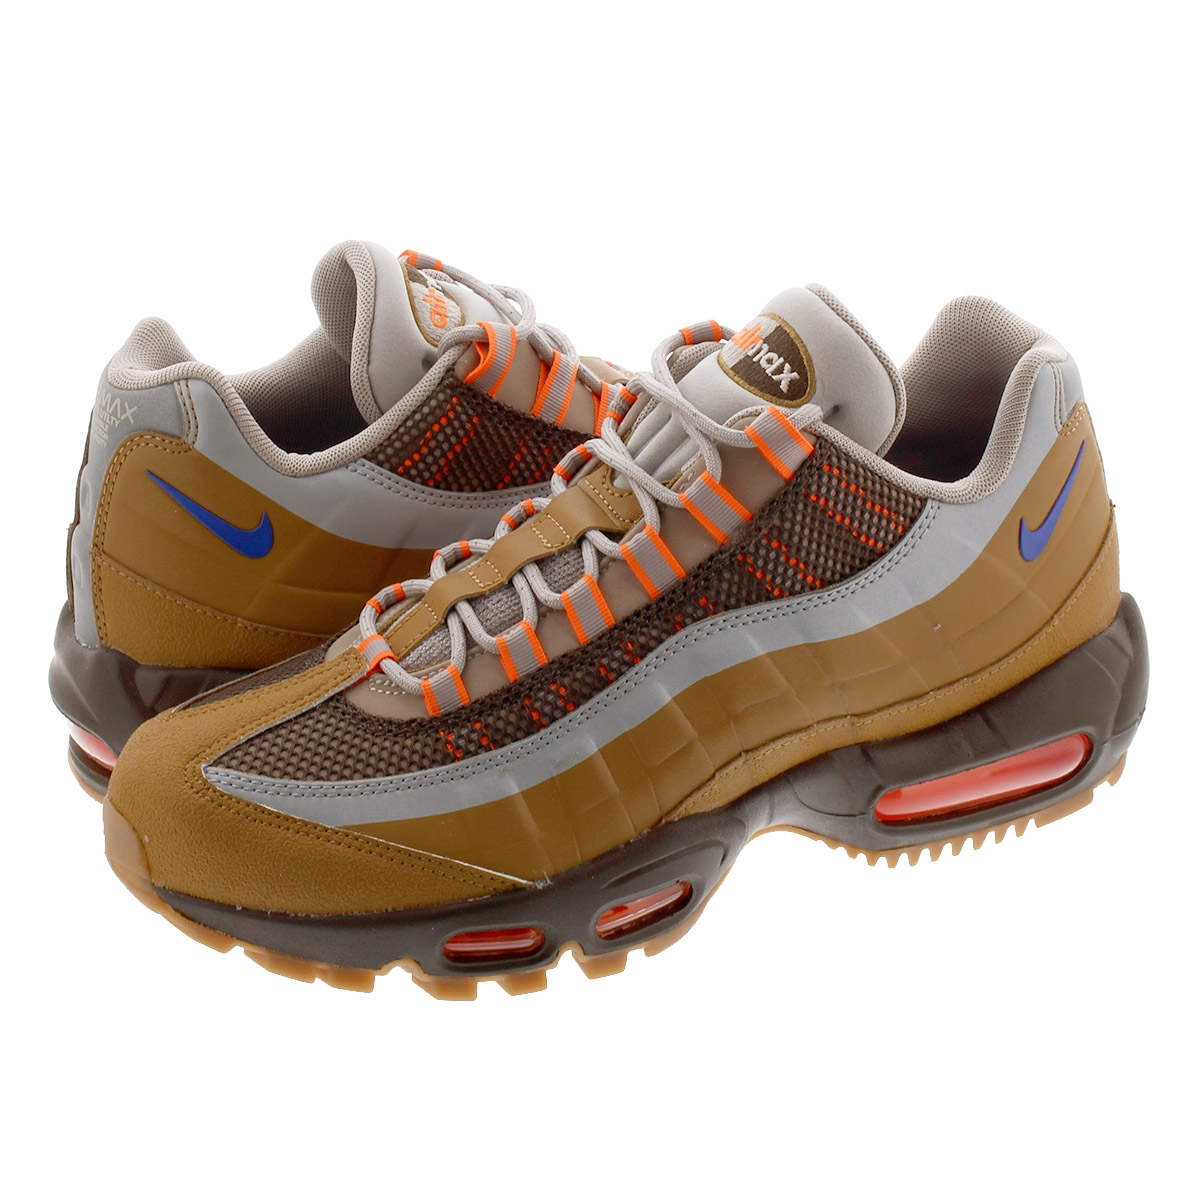 LOWTEX BIG SMALL SHOP: NIKE AIR MAX 95 UTILITY Kie Ney AMAX